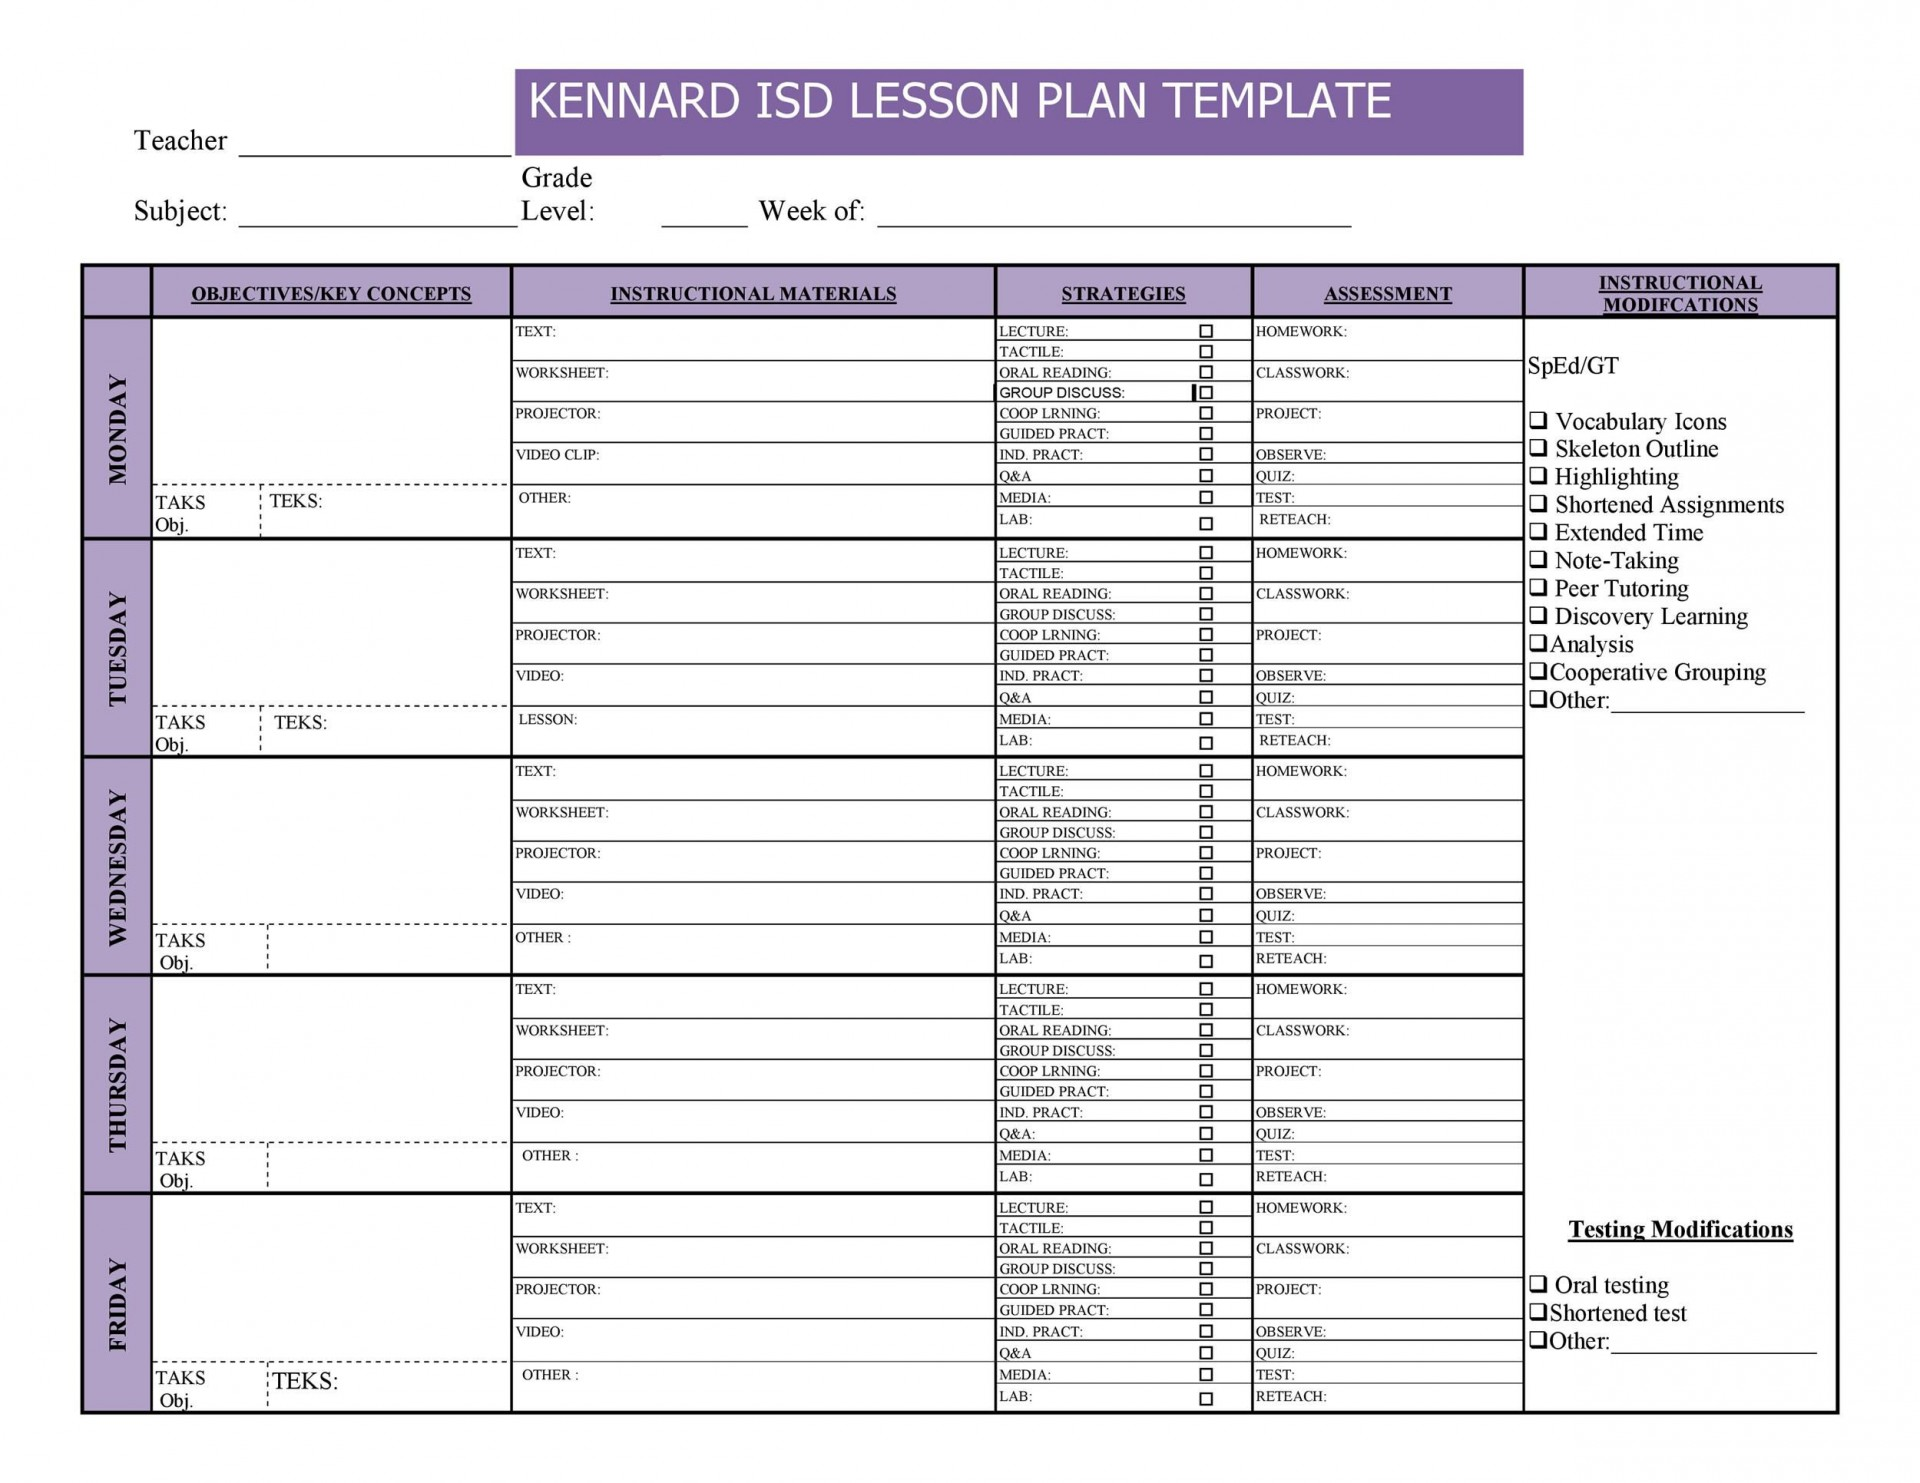 007 Simple Weekly Lesson Plan Template Image  Preschool Google Doc Editable1920